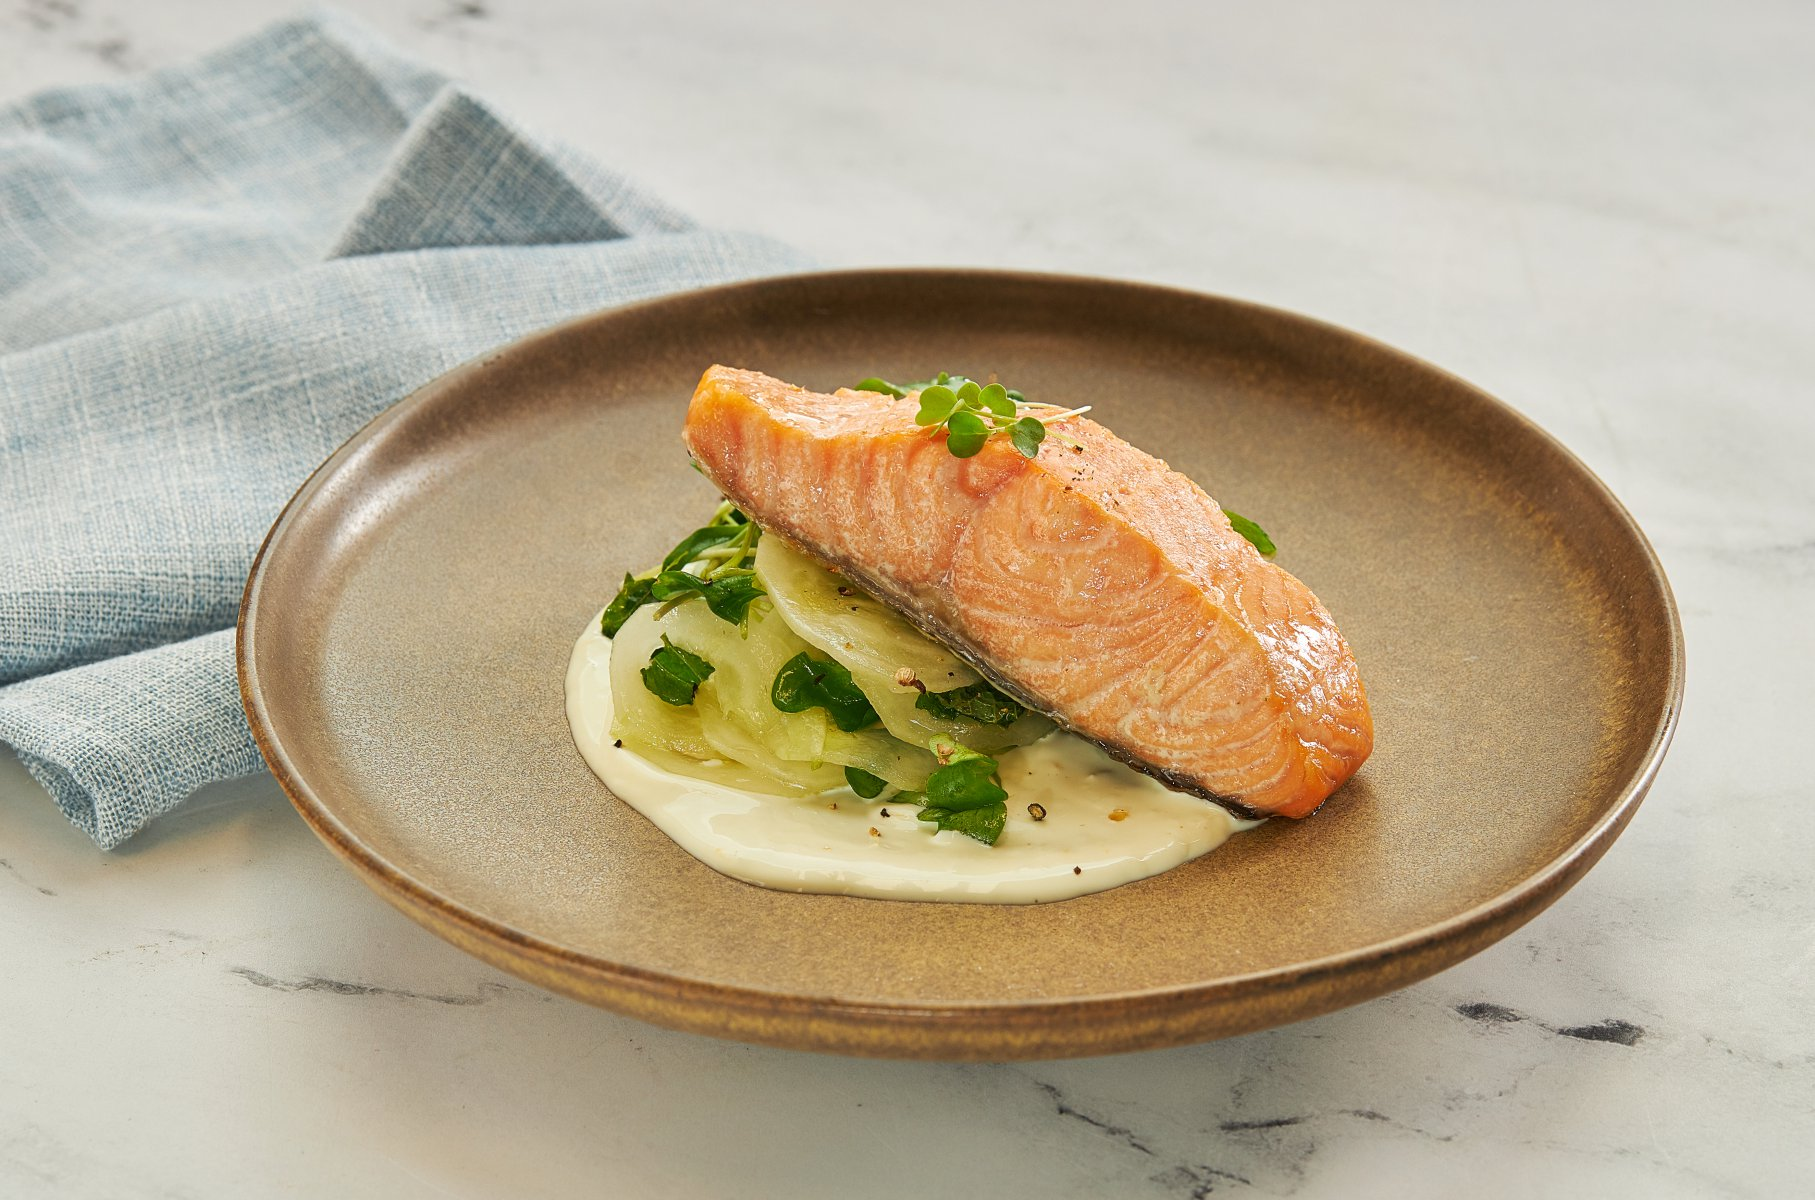 Poached Royal Salmon with Greek Cucumber Salad